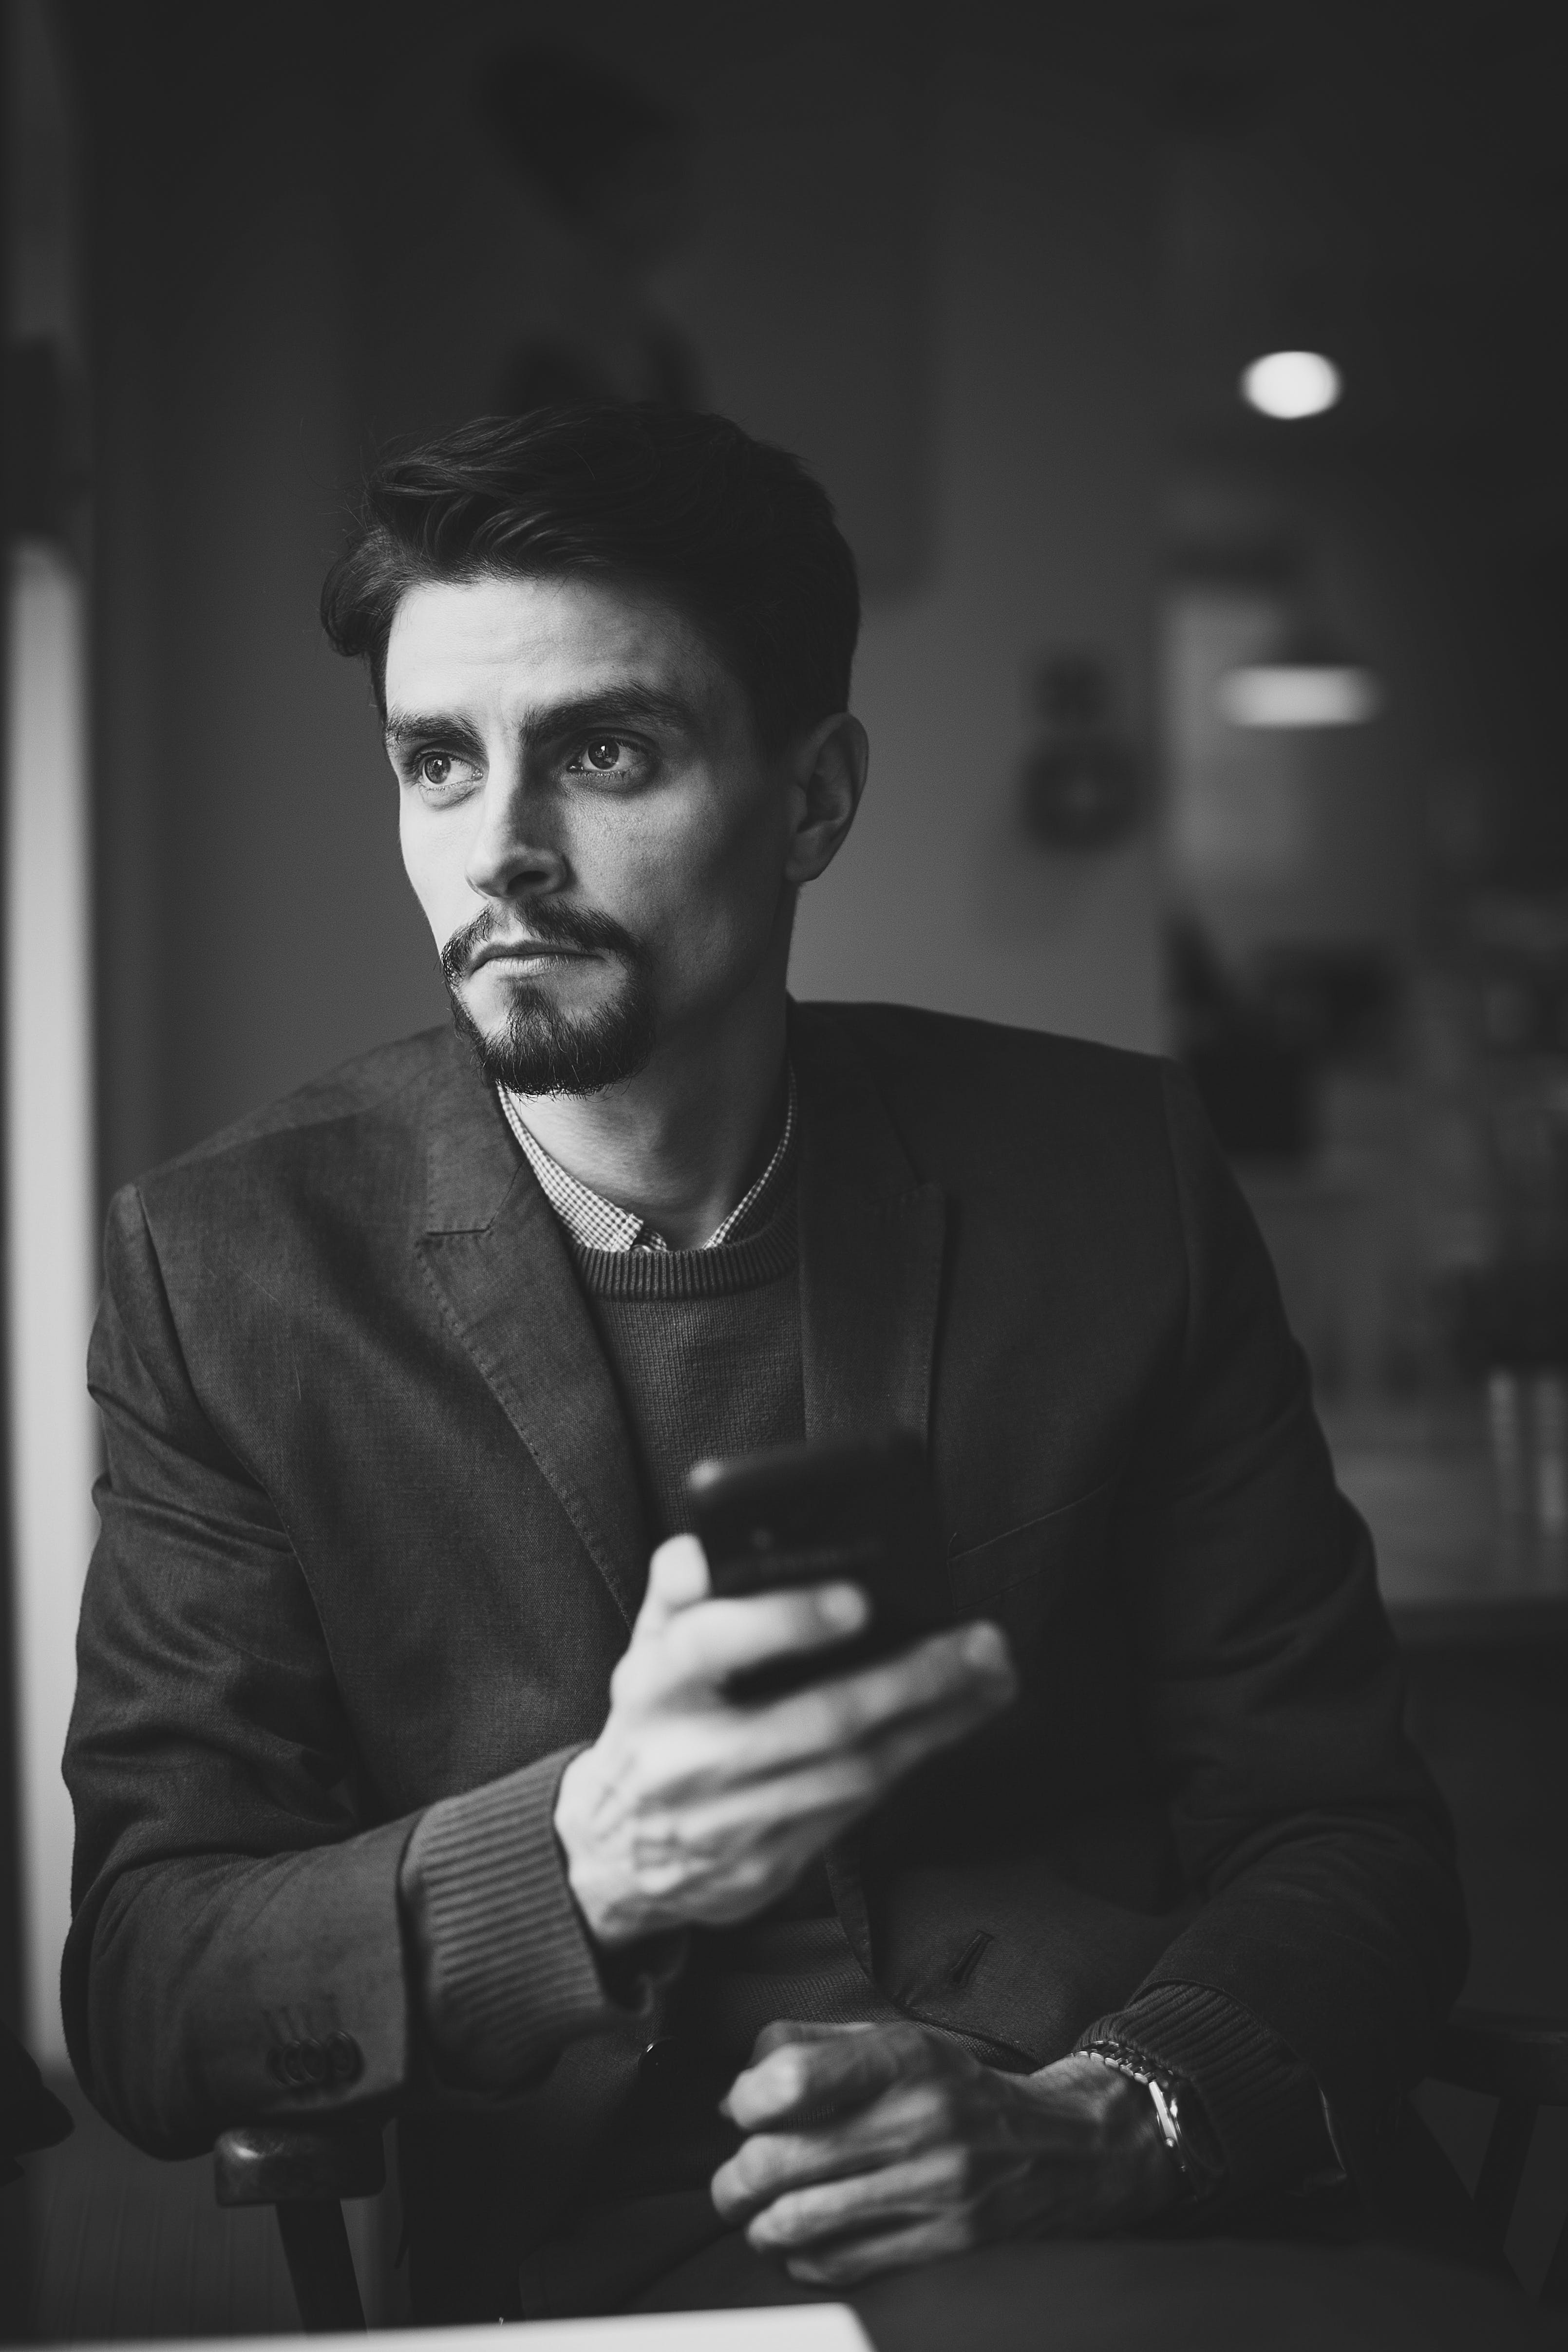 Free stock photo of black-and-white, man, person, smartphone